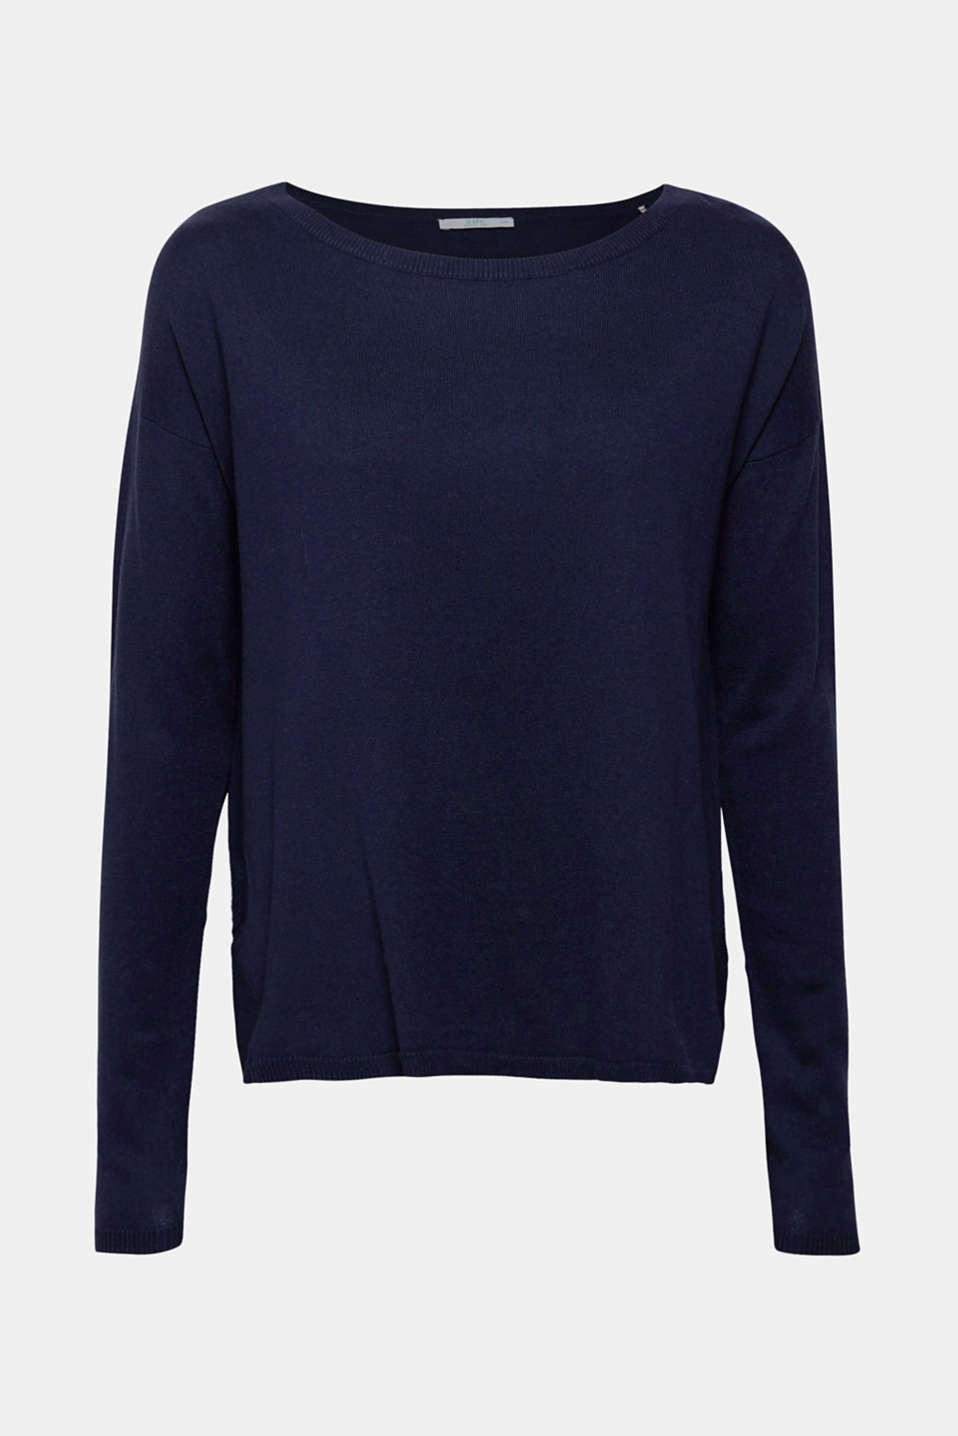 The perfect essential piece, this casual fine knit jumper comes with a large neckline, side slits and gently processed, high-quality organic cotton!